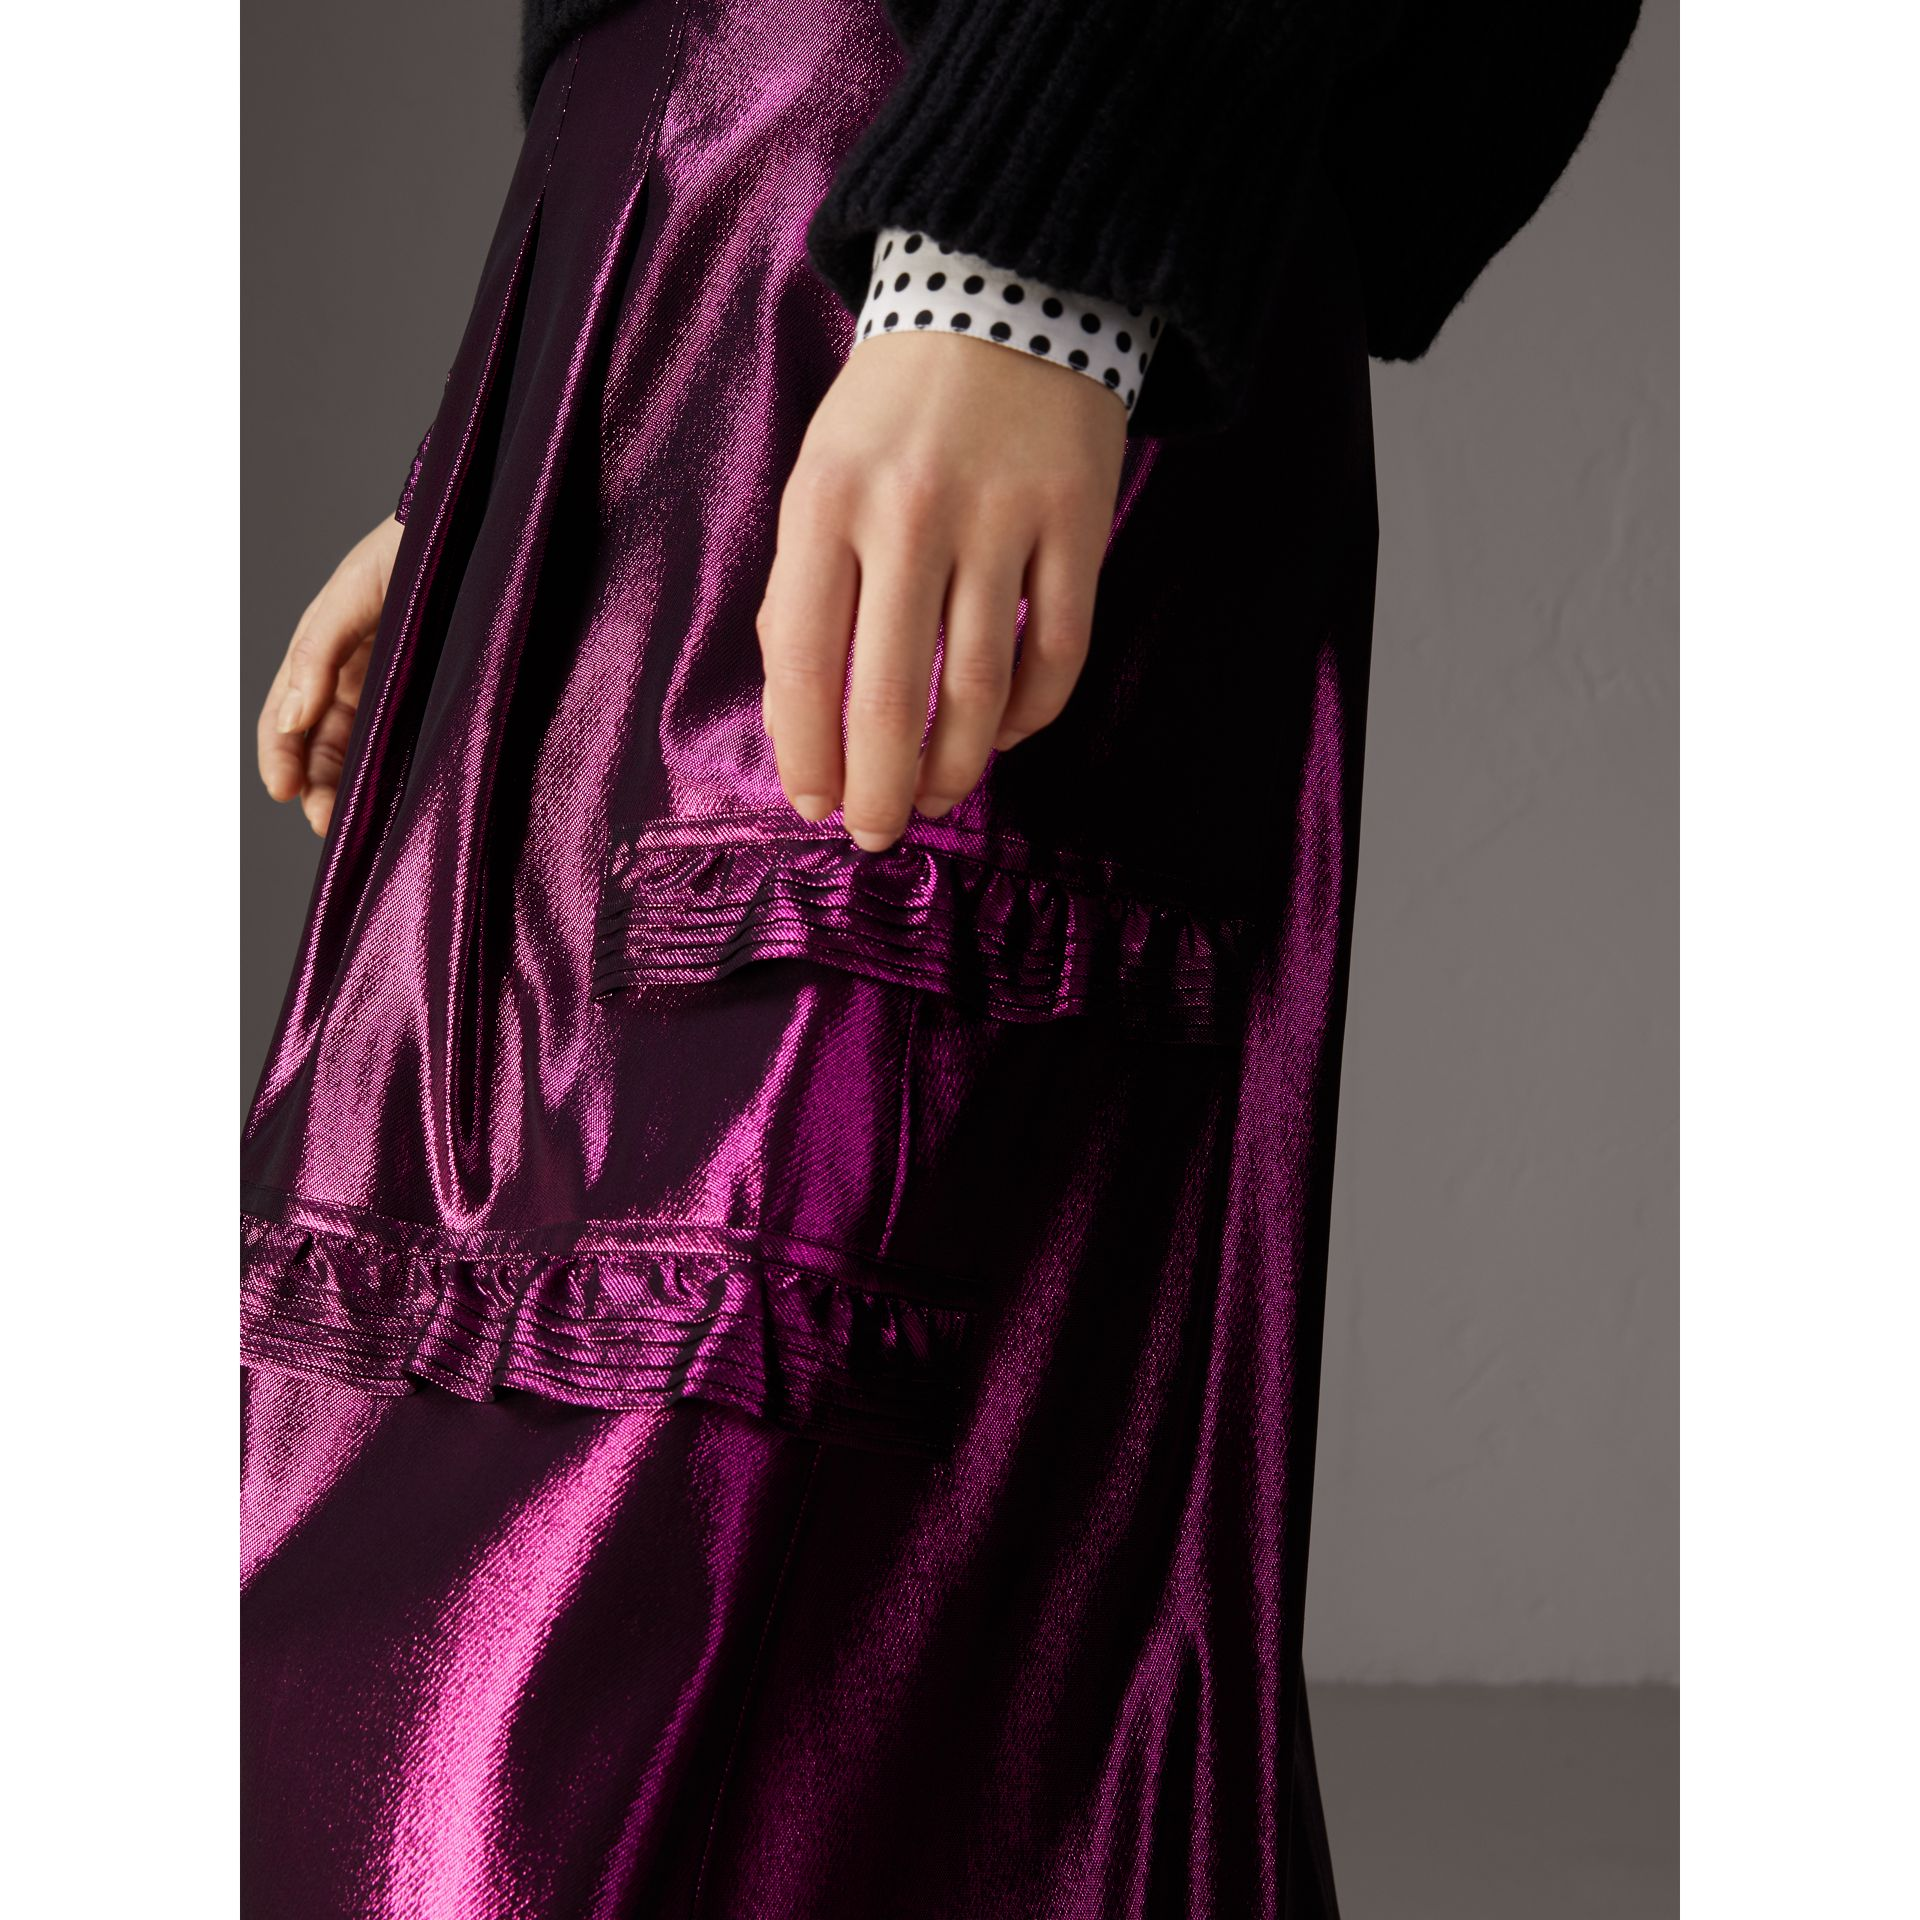 Ruffle Detail Lamé Skirt in Bright Fuchsia - Women | Burberry - gallery image 2